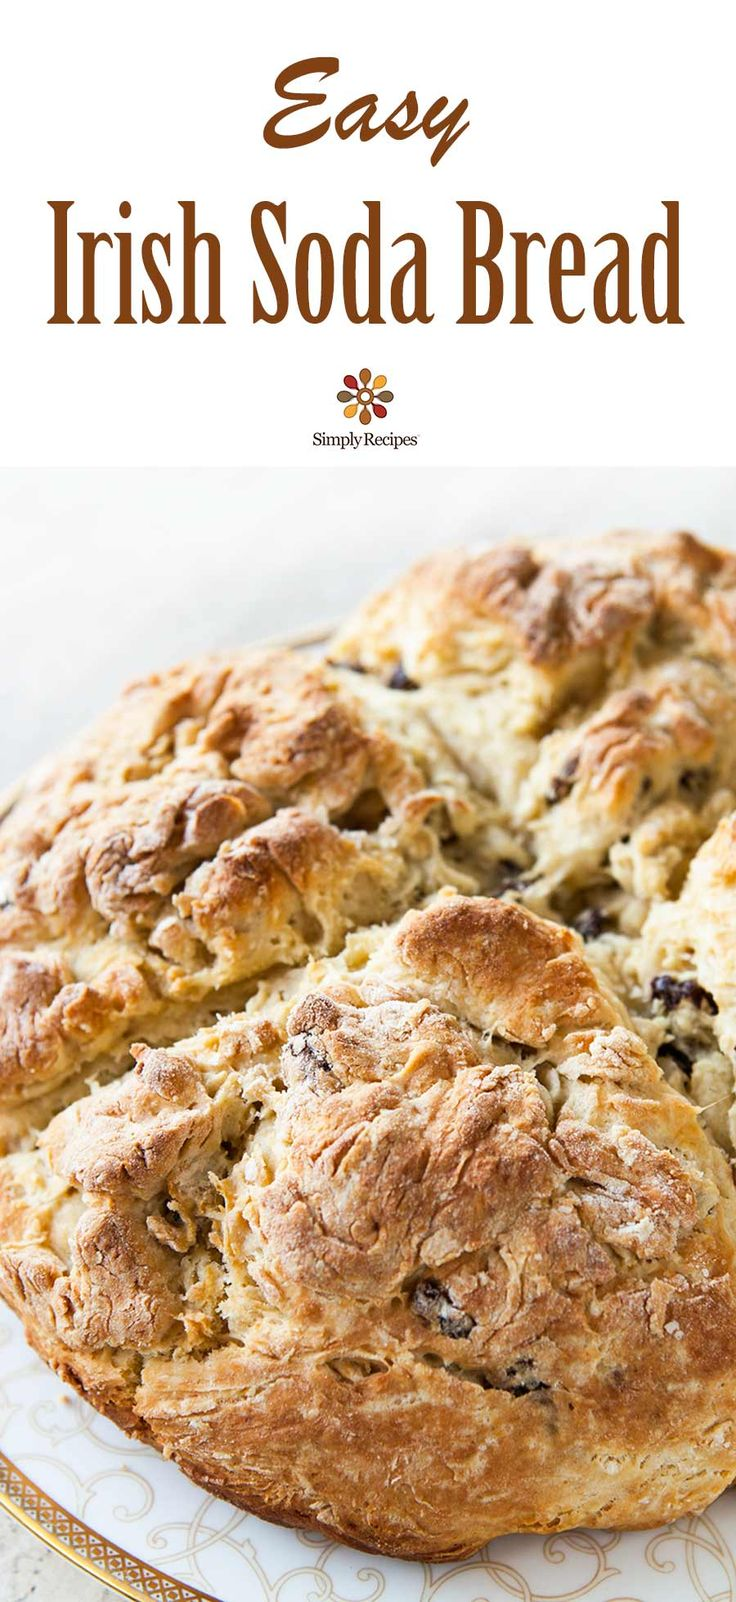 The BEST Irish Soda Bread! Quick and EASY too. All you need is flour, baking soda, salt, buttermilk to start, then you can fancify with raisins and egg. On SimplyRecipes.com #IrishSodaBread #SodaBread #StPatricksDay